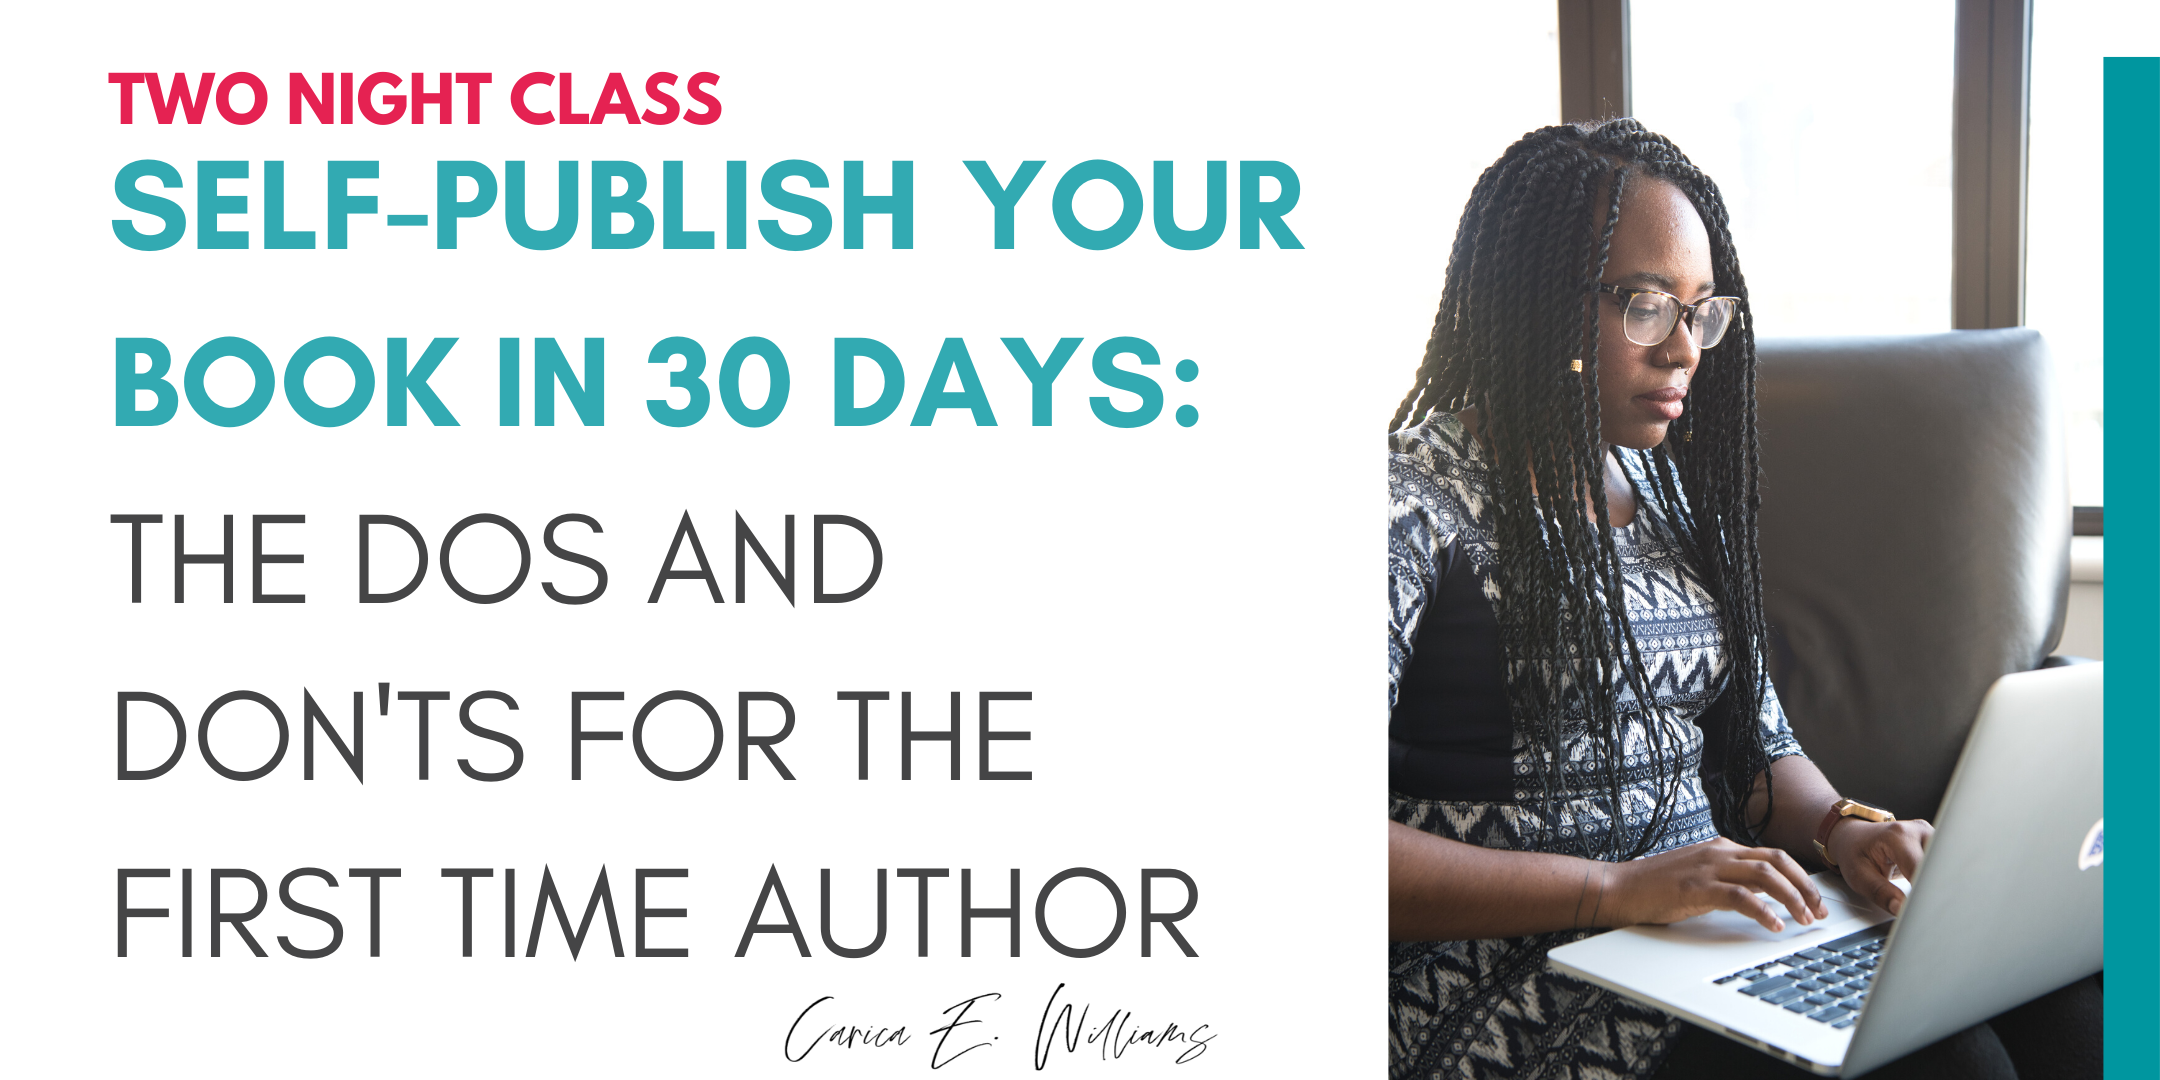 Self-Publish Your Event in 30 Days: The Dos and Don'ts for the 1st Time Author